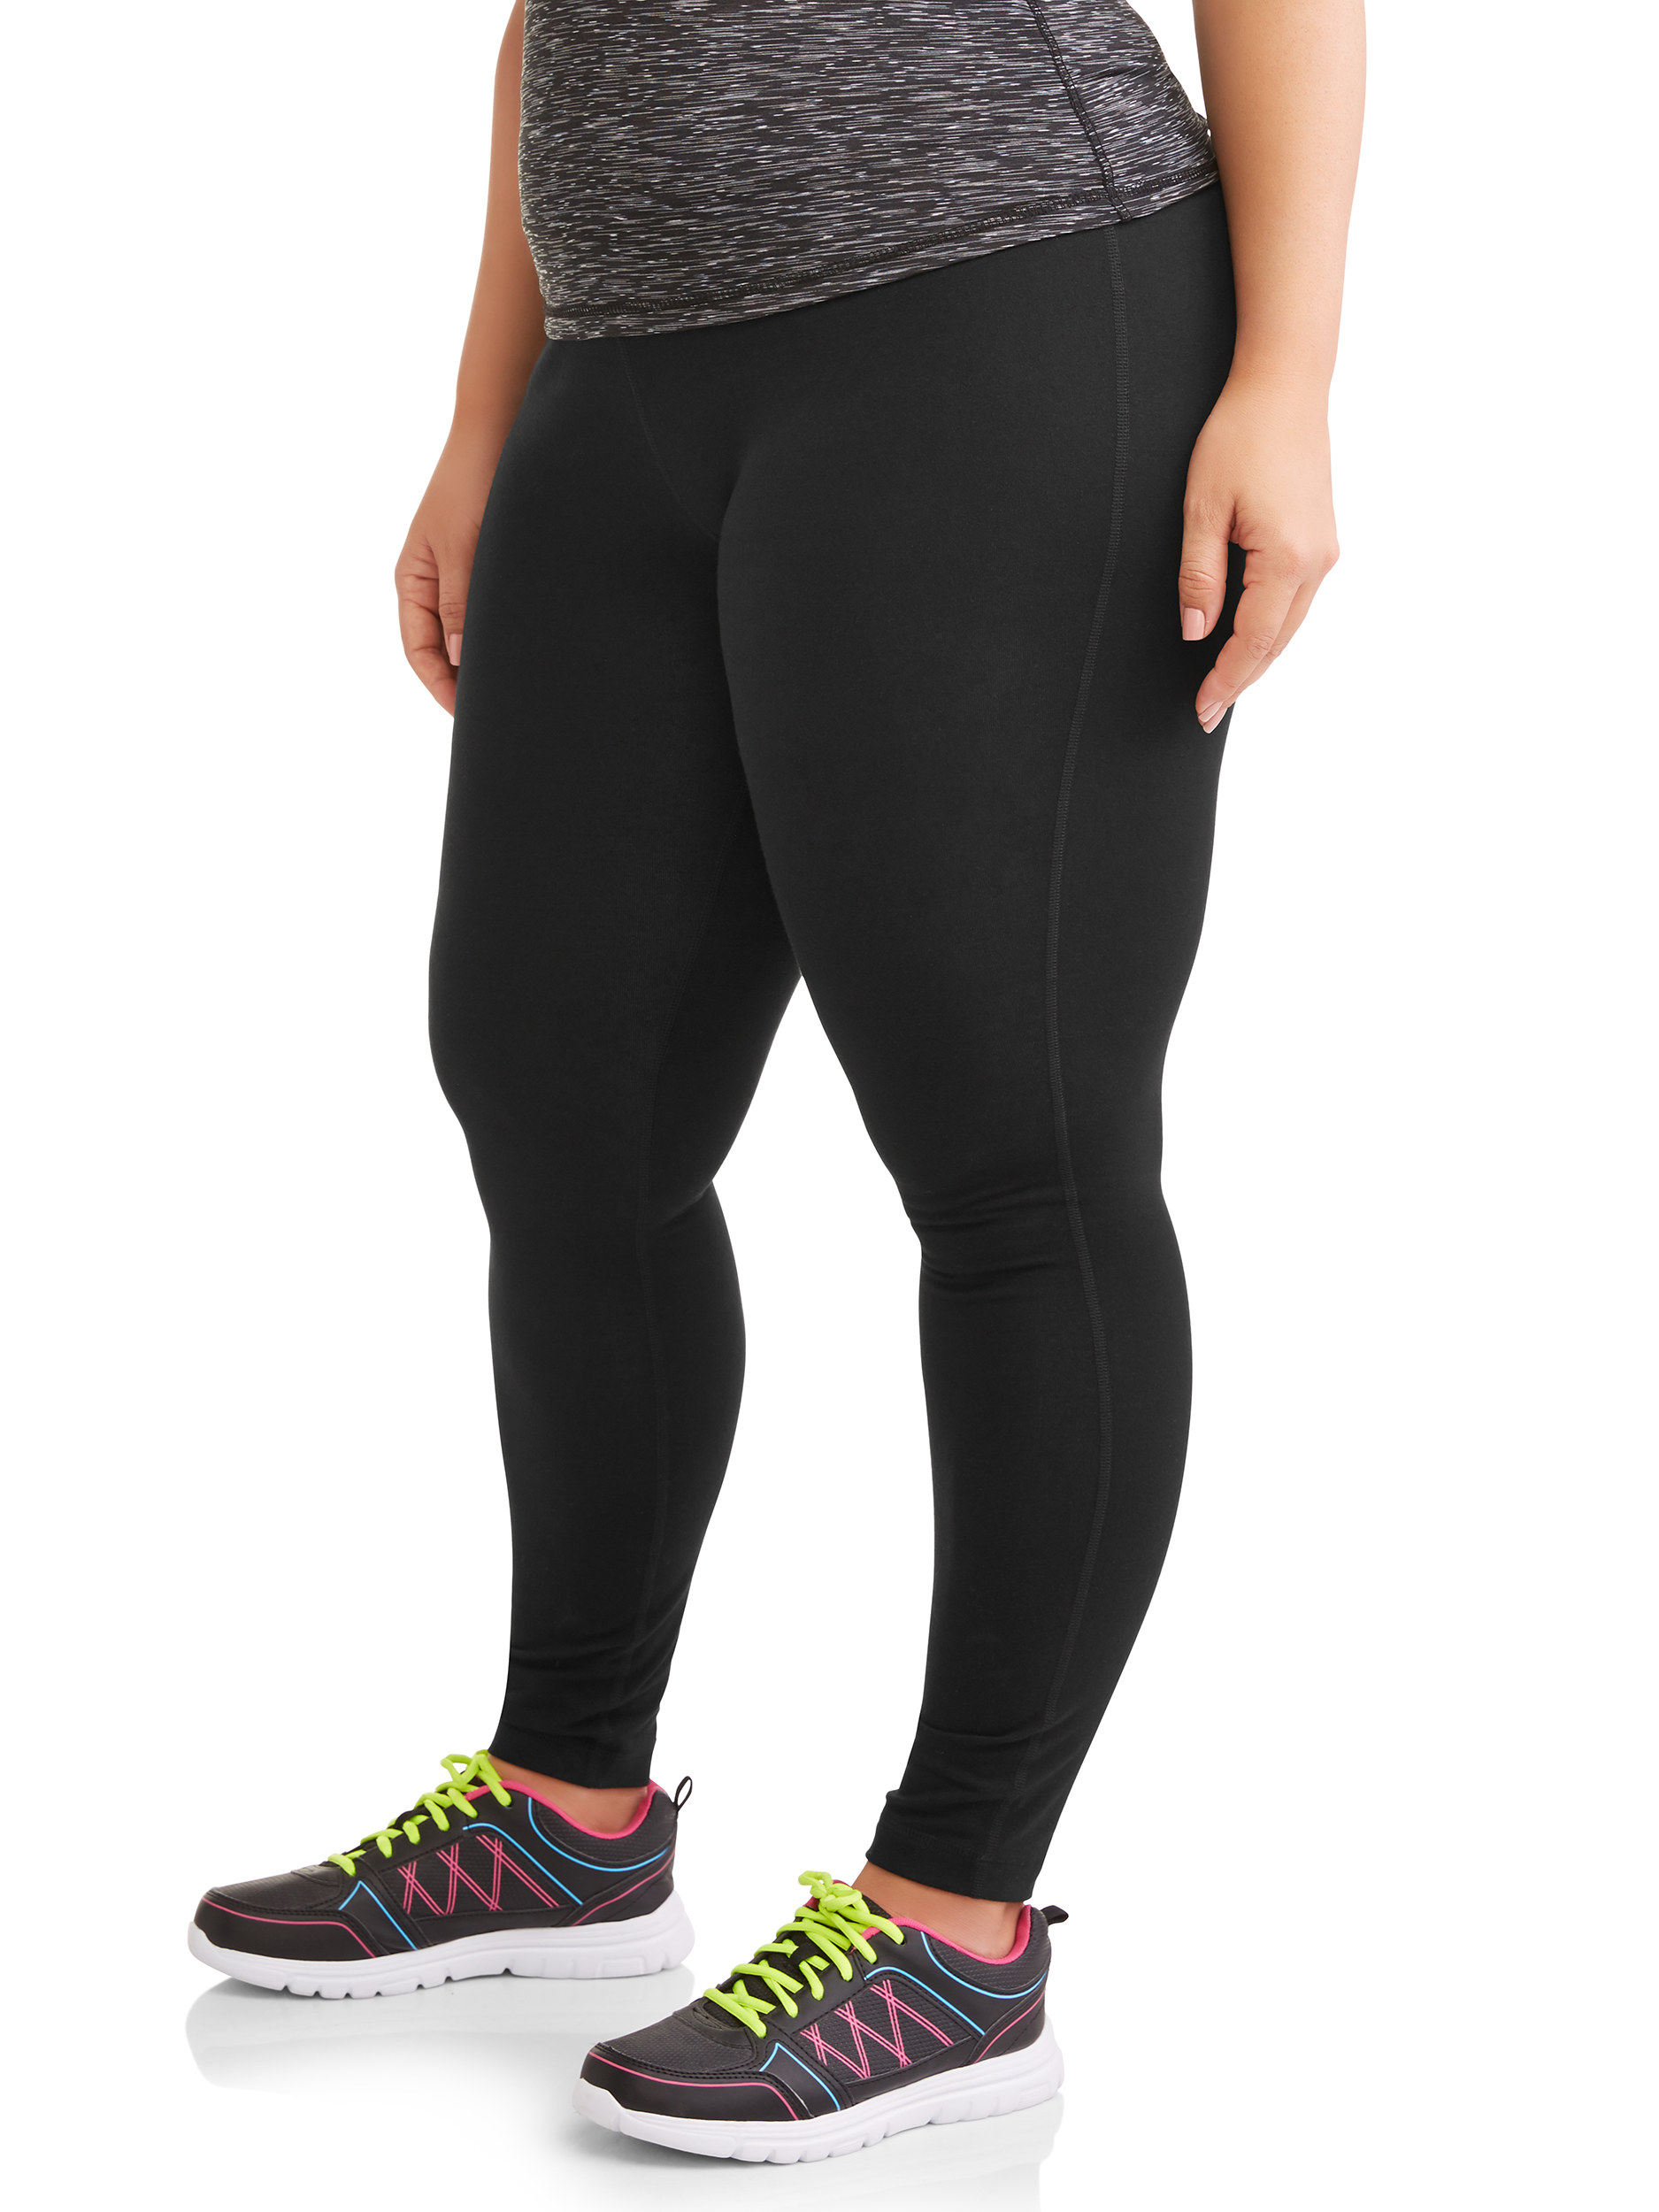 Model wearing the leggings in black with a gray waist band